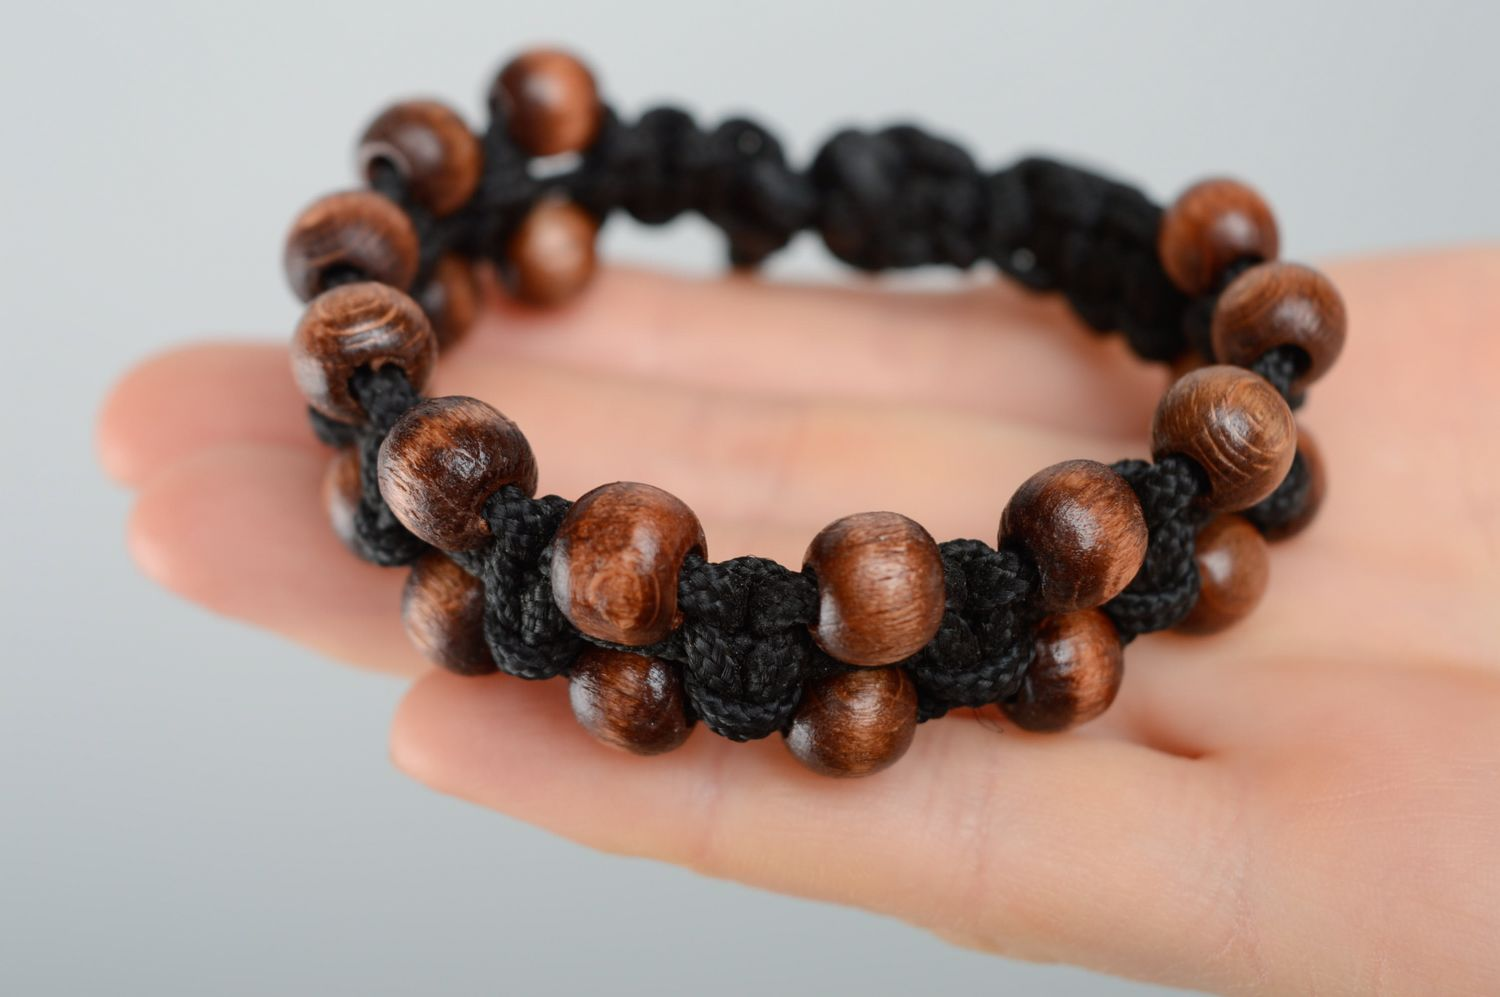 Macrame woven cord bracelet with wooden beads photo 3